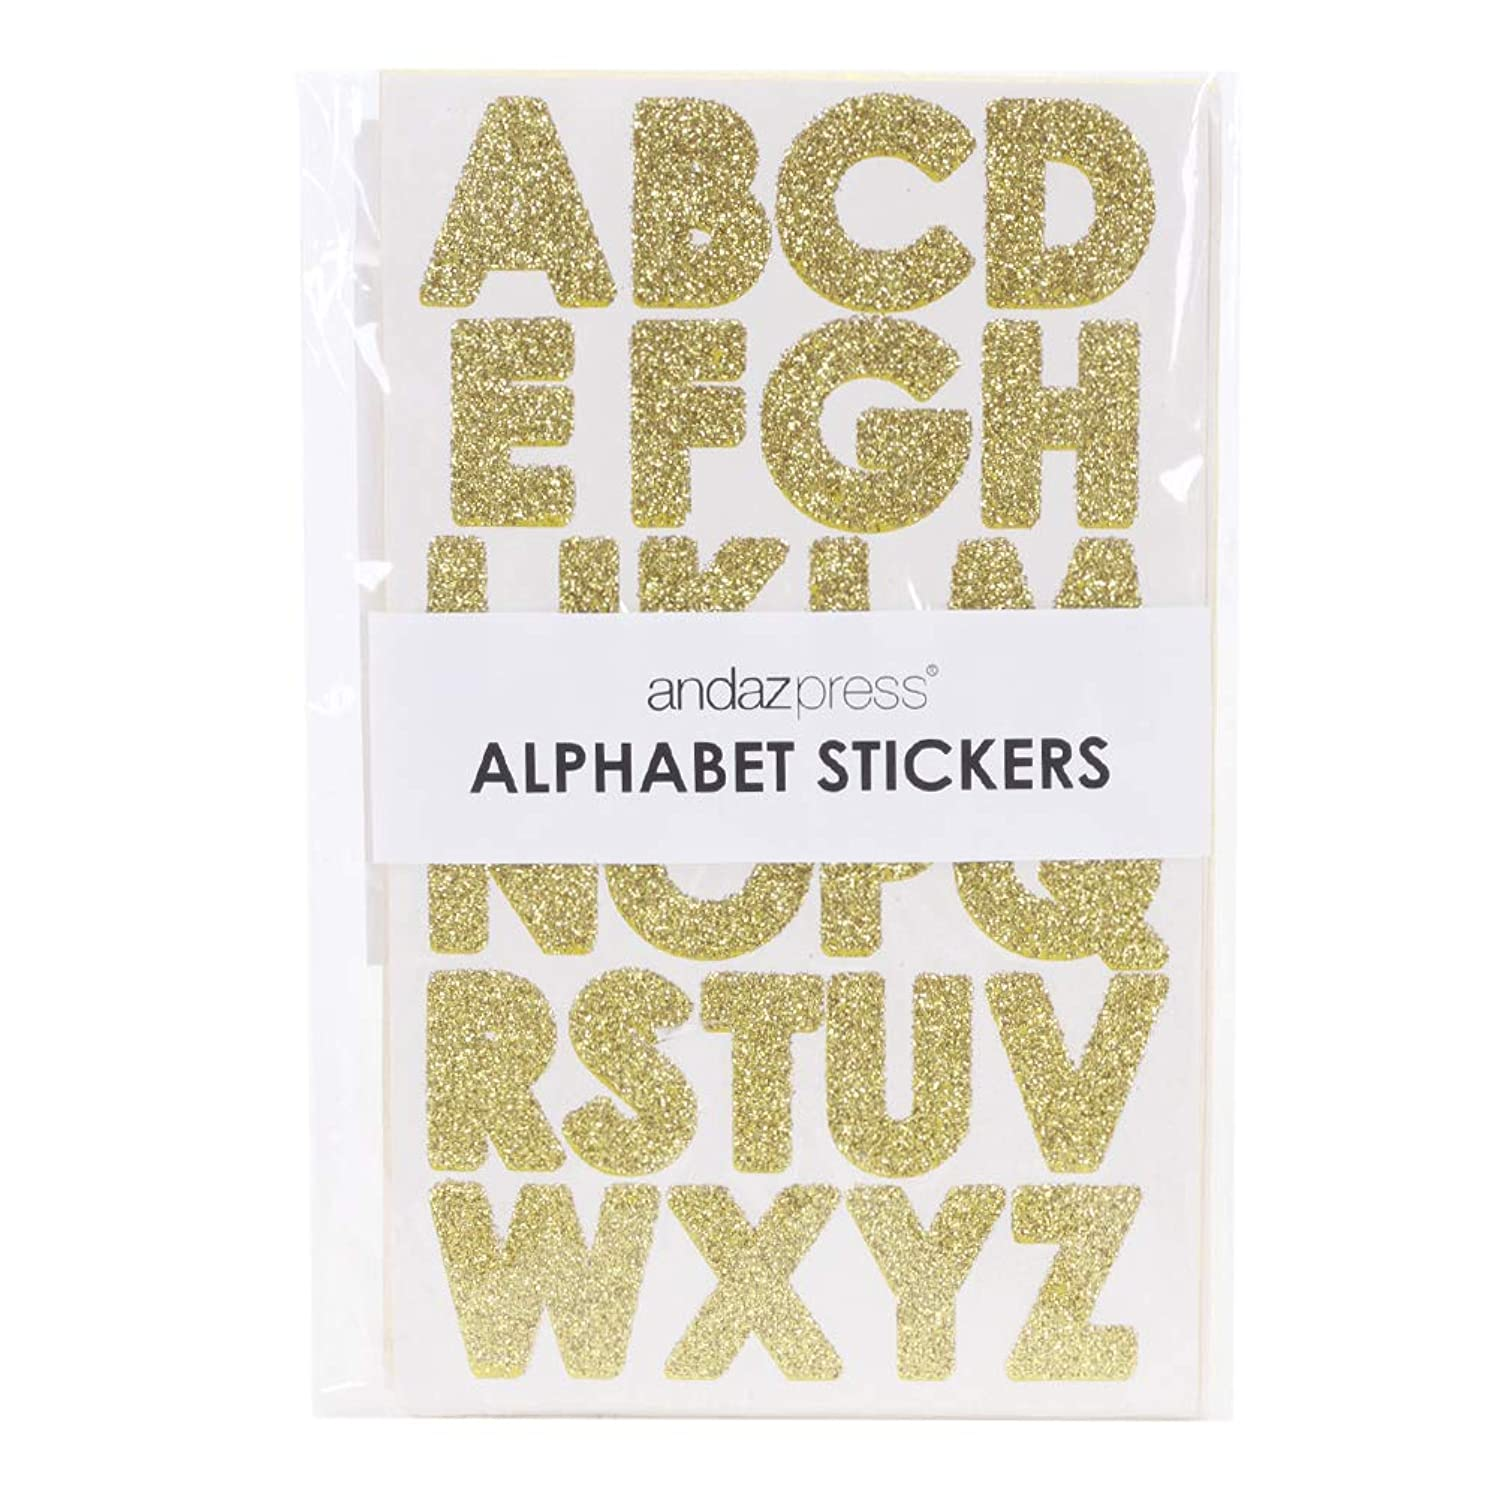 Andaz Press Large Real Glitter Large Gold Alphabet Sticker Letters, Big 1-Inch Labels for Wedding, Kids Birthday, Classroom Teacher Supplies, Crafting, Scrapbooking, Graduation Cap Decorations